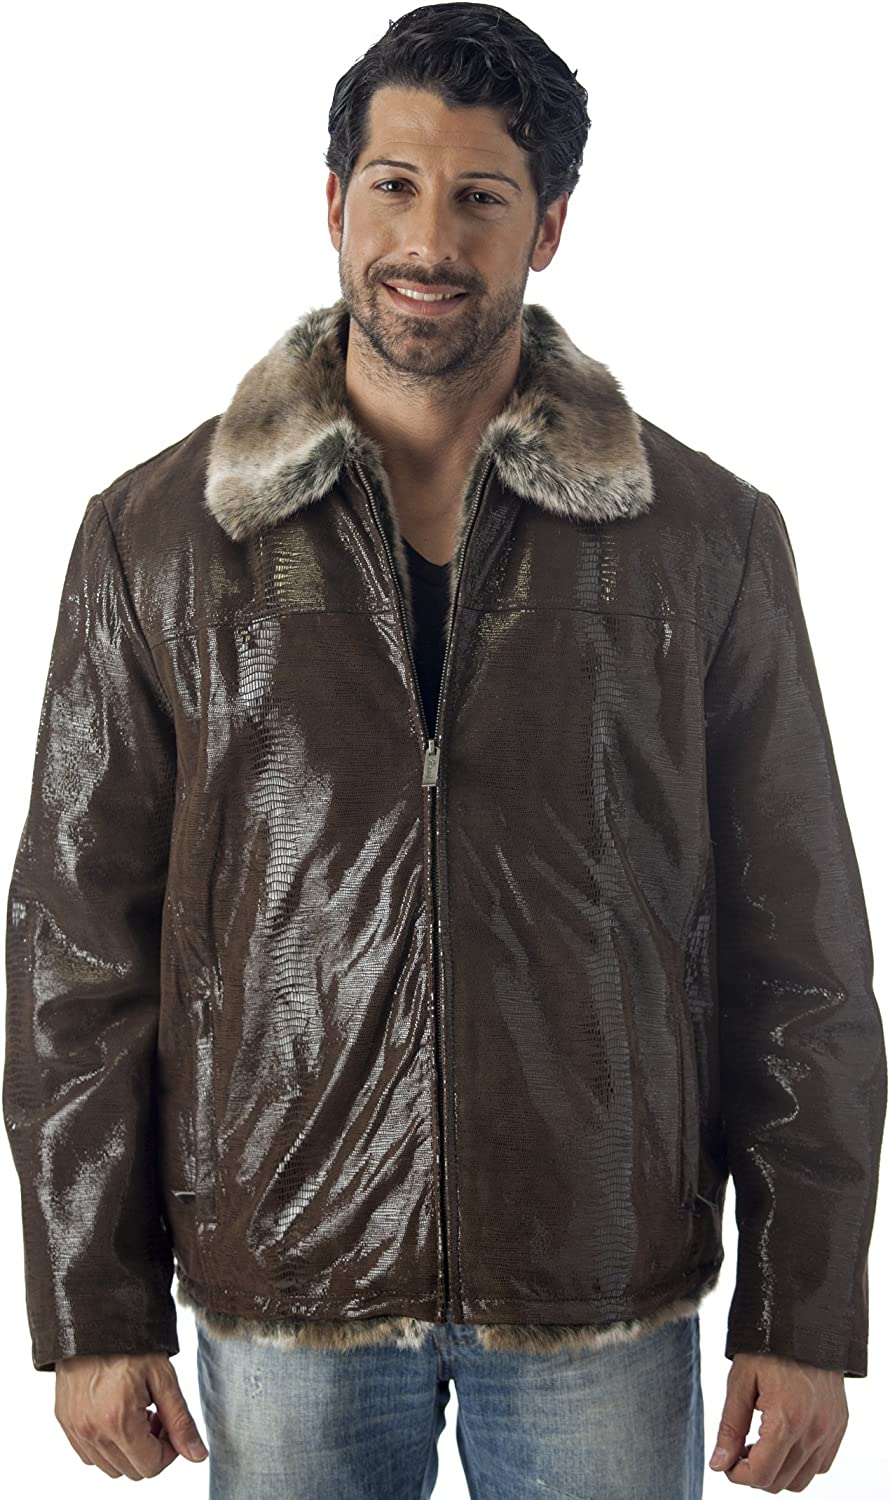 REED Men's Sheep Skin Leather Jacket Shearling Style